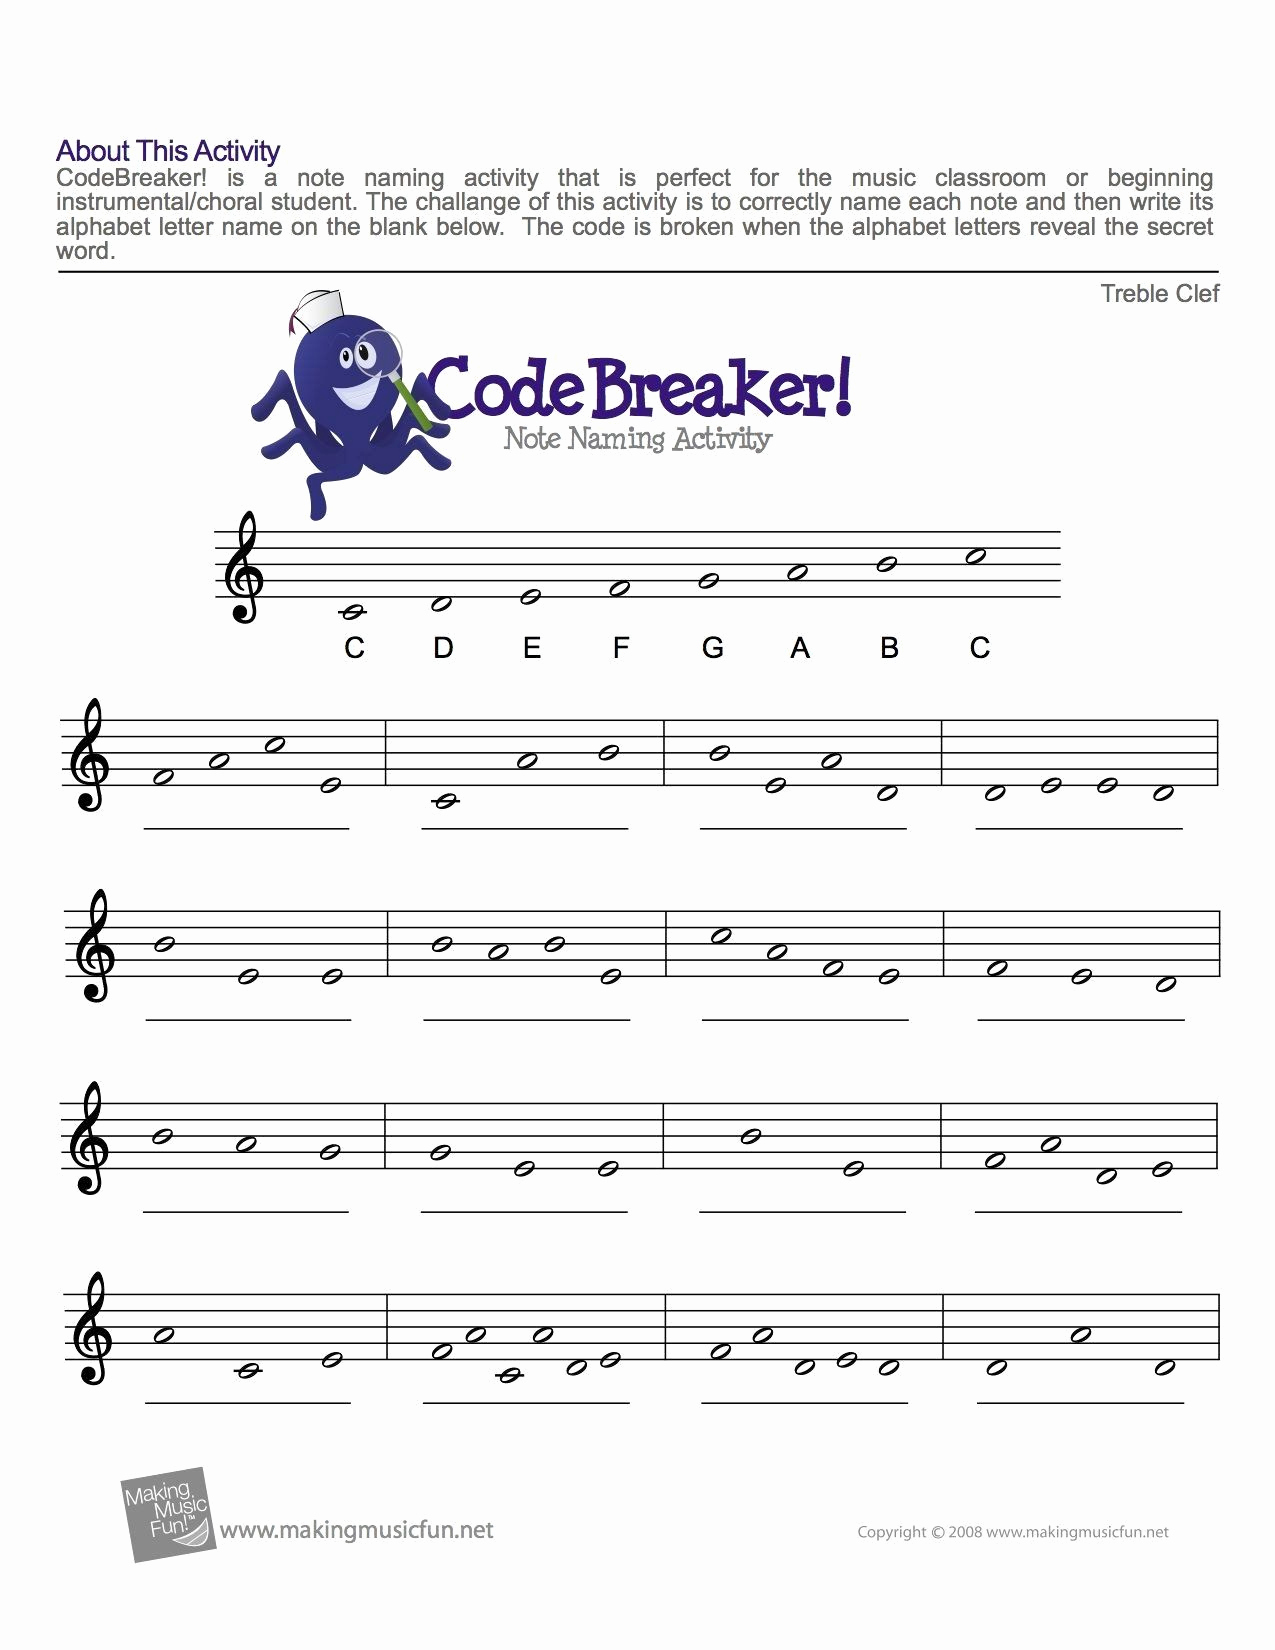 Music theory Worksheet for Kids Awesome Treble Clef Notes Worksheet Treble Clef Fun Note Reading